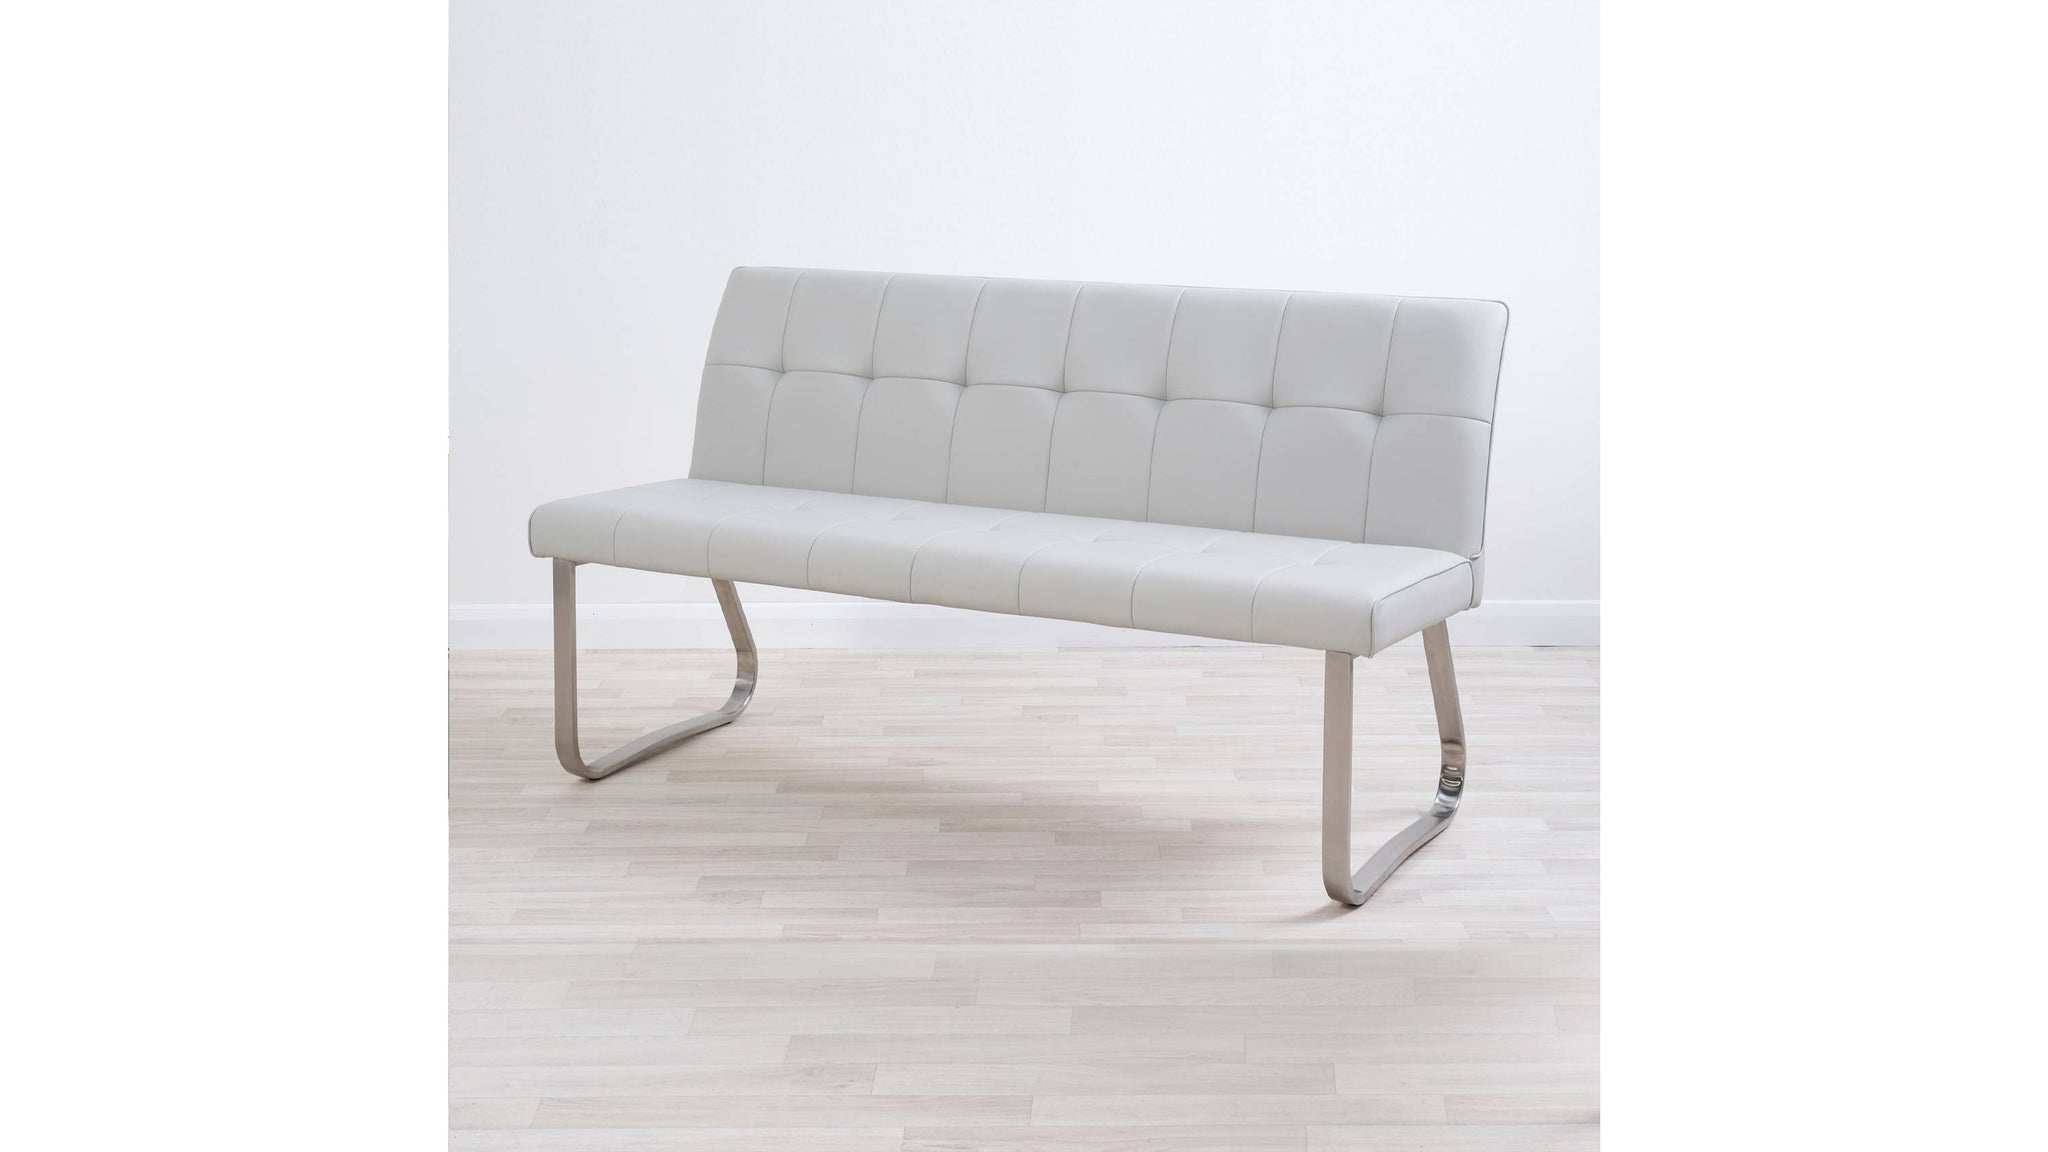 Finley 3 Seater Bench With Backrest